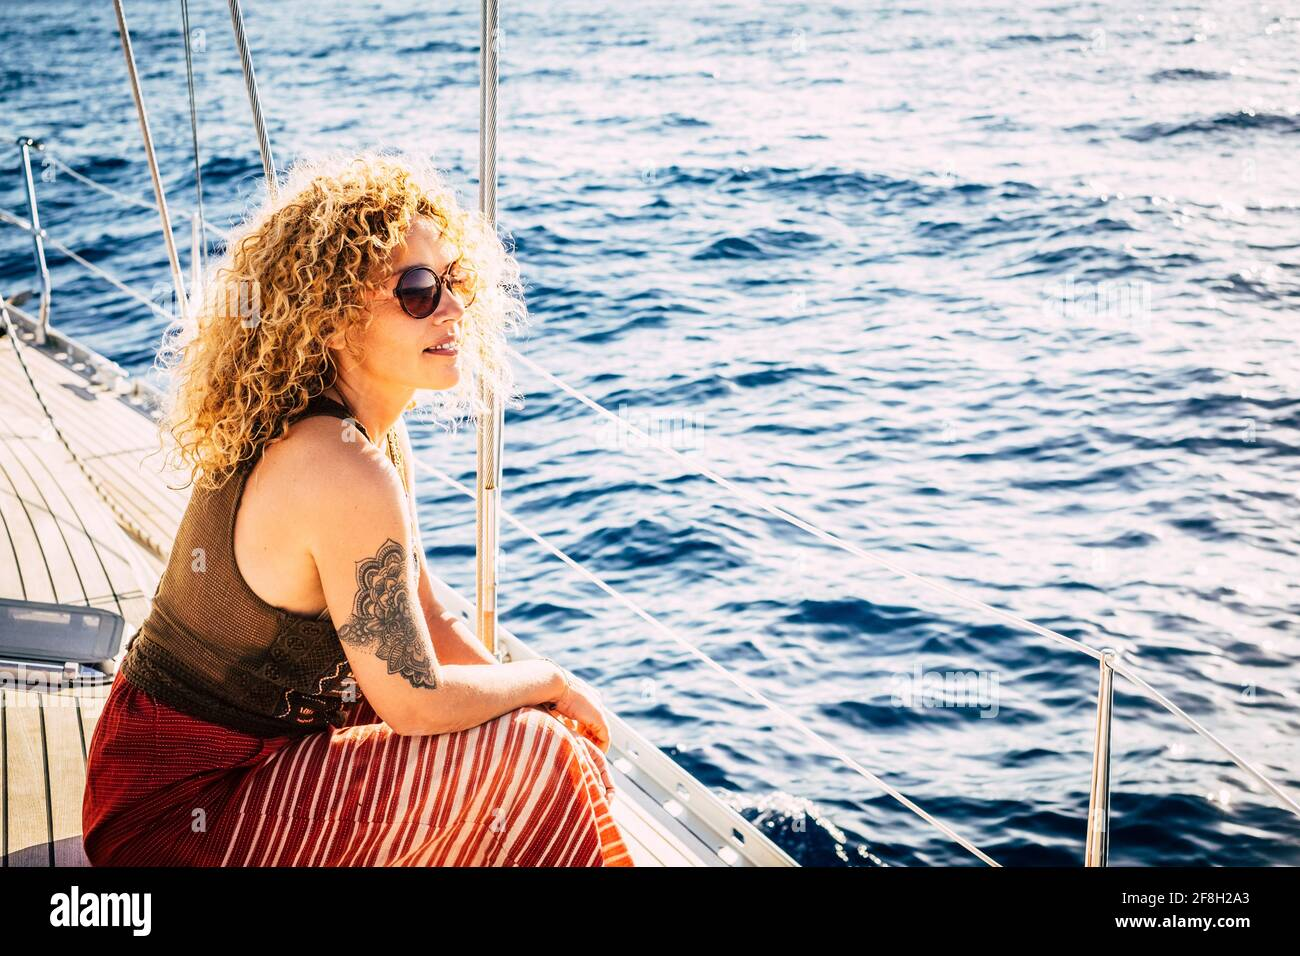 Cheerful attractive young adult blonde woman smile and enjoy the excursion trip sitting on the sail boat deck looking the blue sea around - concept of Stock Photo